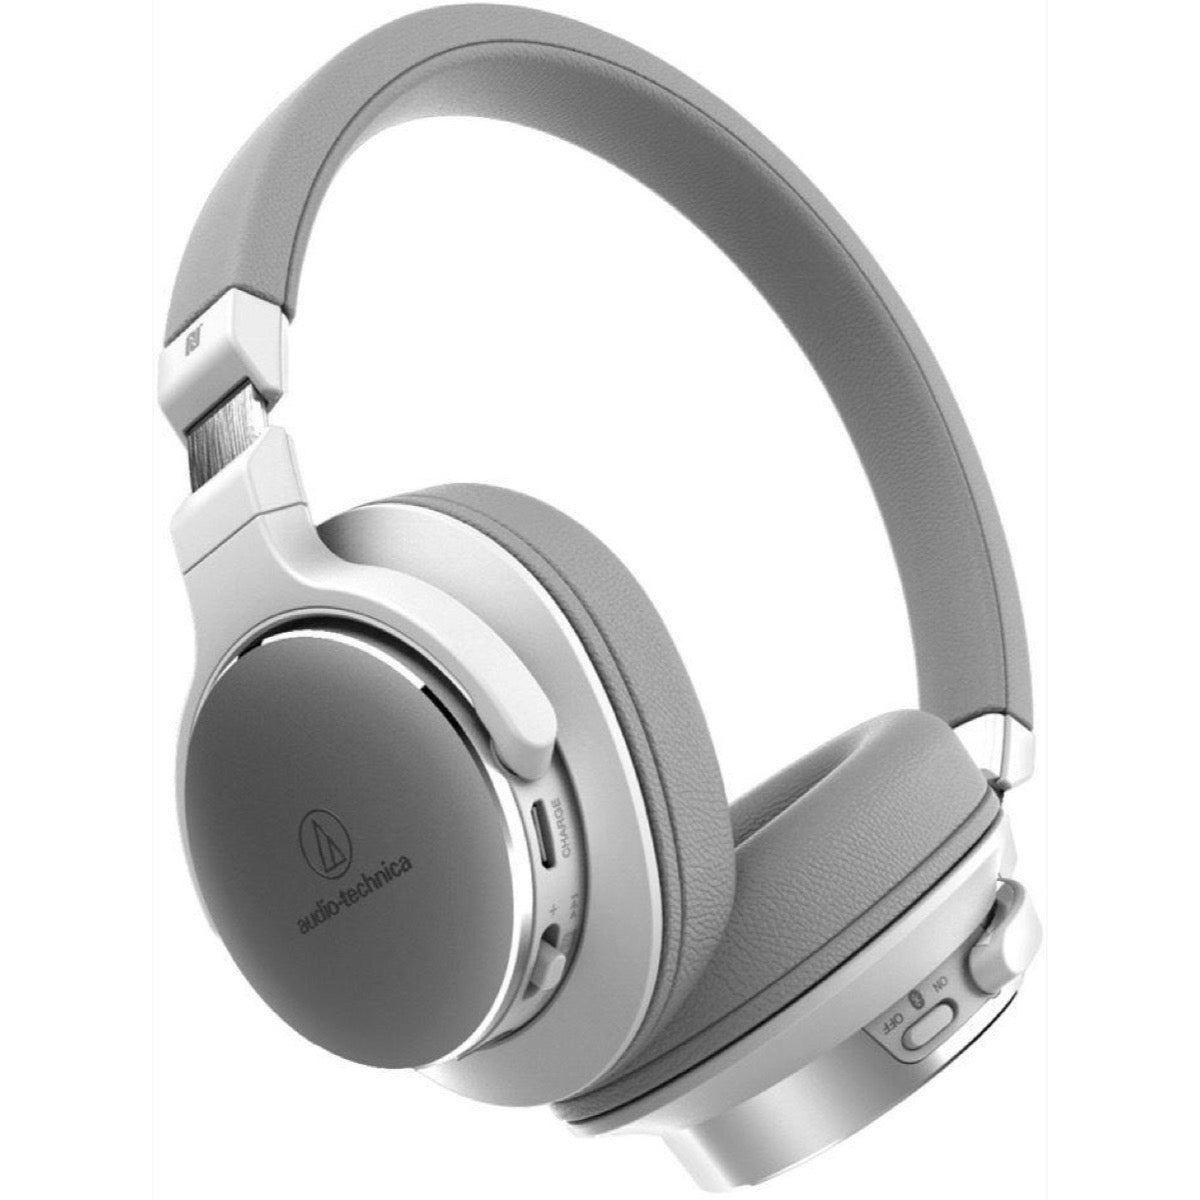 Audio-Technica ATH-SR5BT Wireless Bluetooth Headphones, White